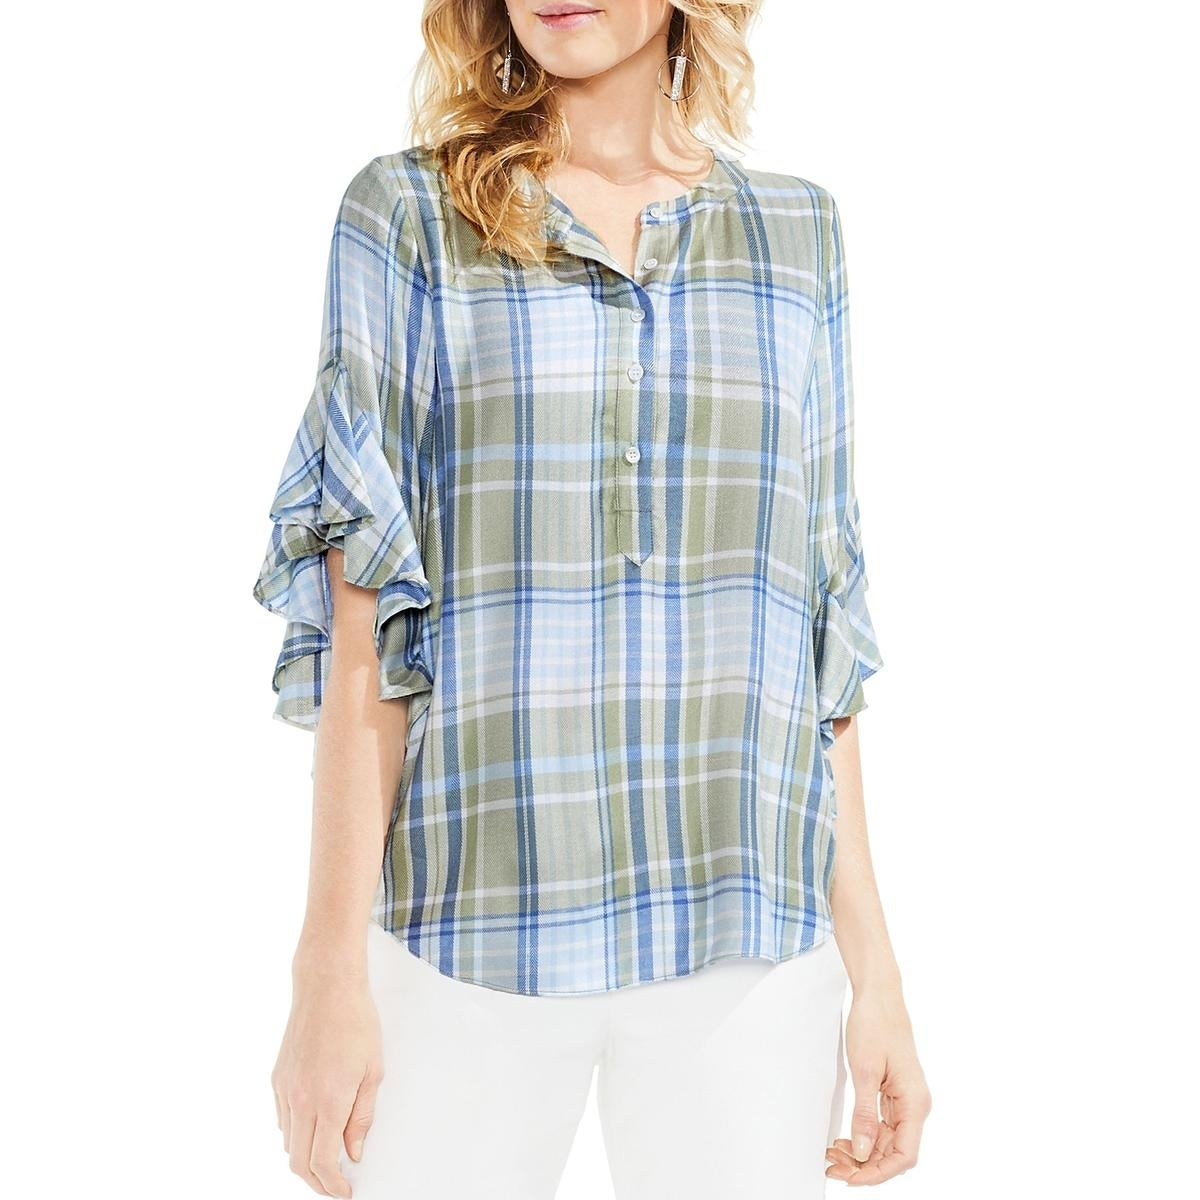 34965dd223872 Shop Vince Camuto Womens Henley Top Country Plaid Ruffle Sleeve - Free  Shipping On Orders Over $45 - Overstock - 26430116